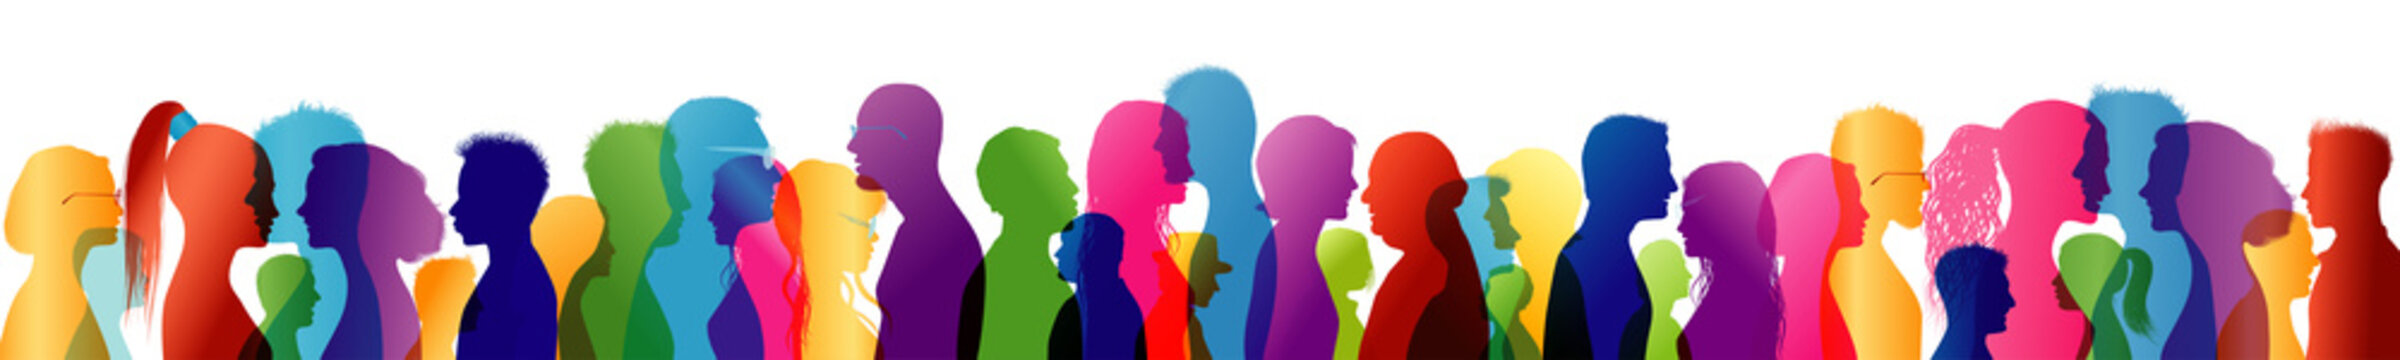 Crowd talking. Group of people talking. Speak. To communicate. Colored silhouette profiles